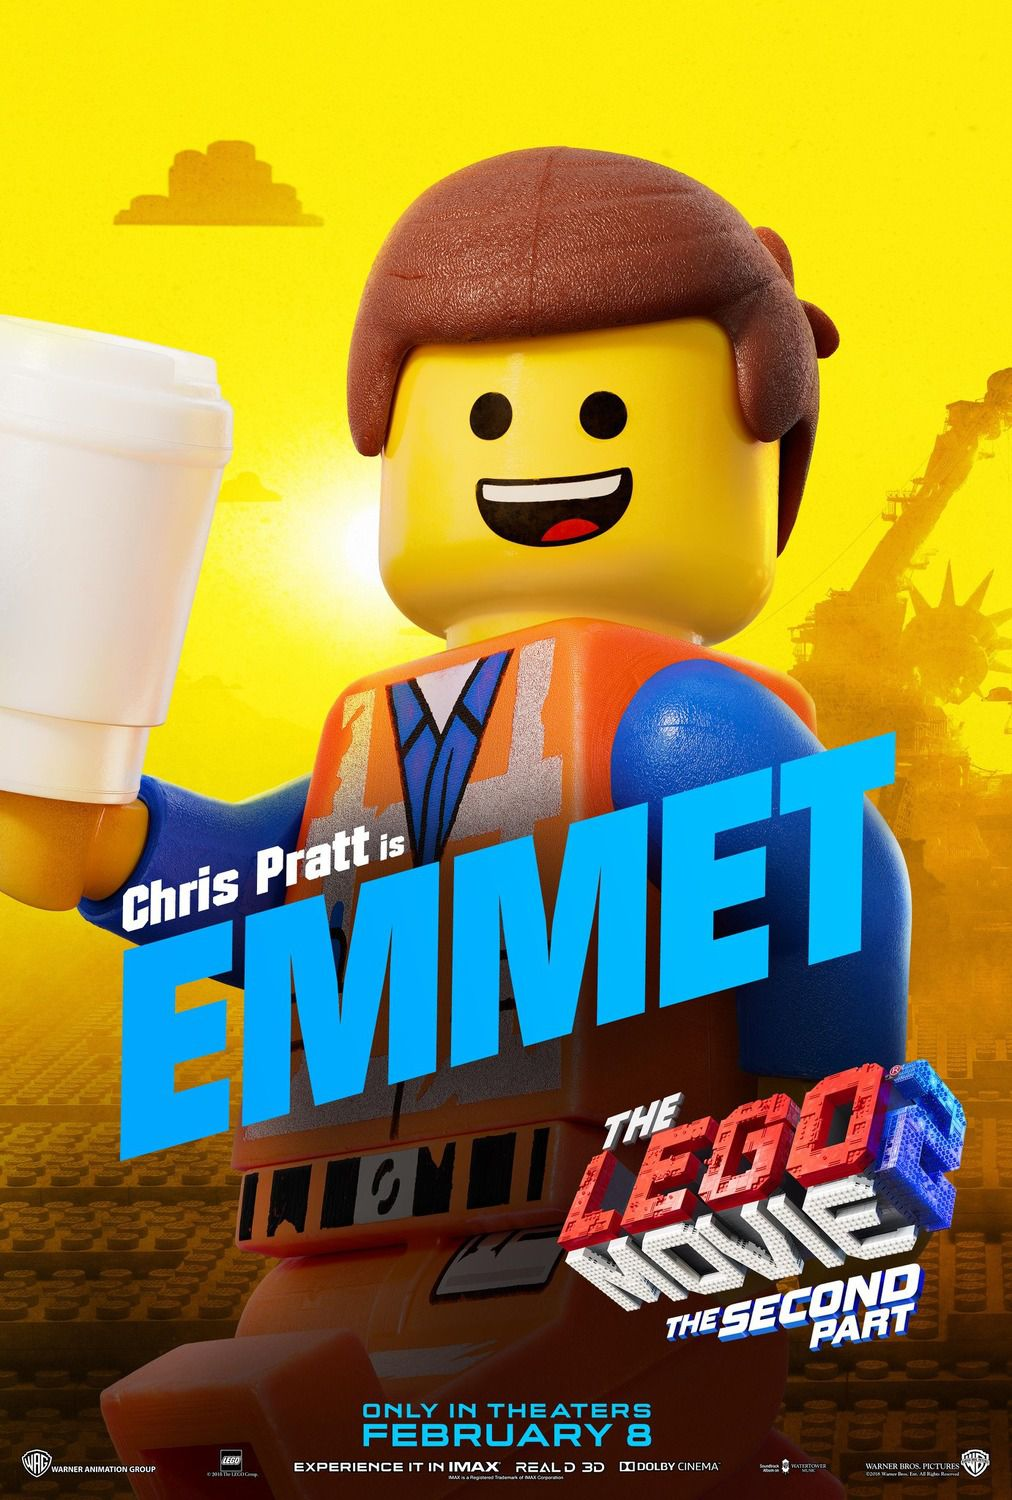 Chris Pratt is Emmet